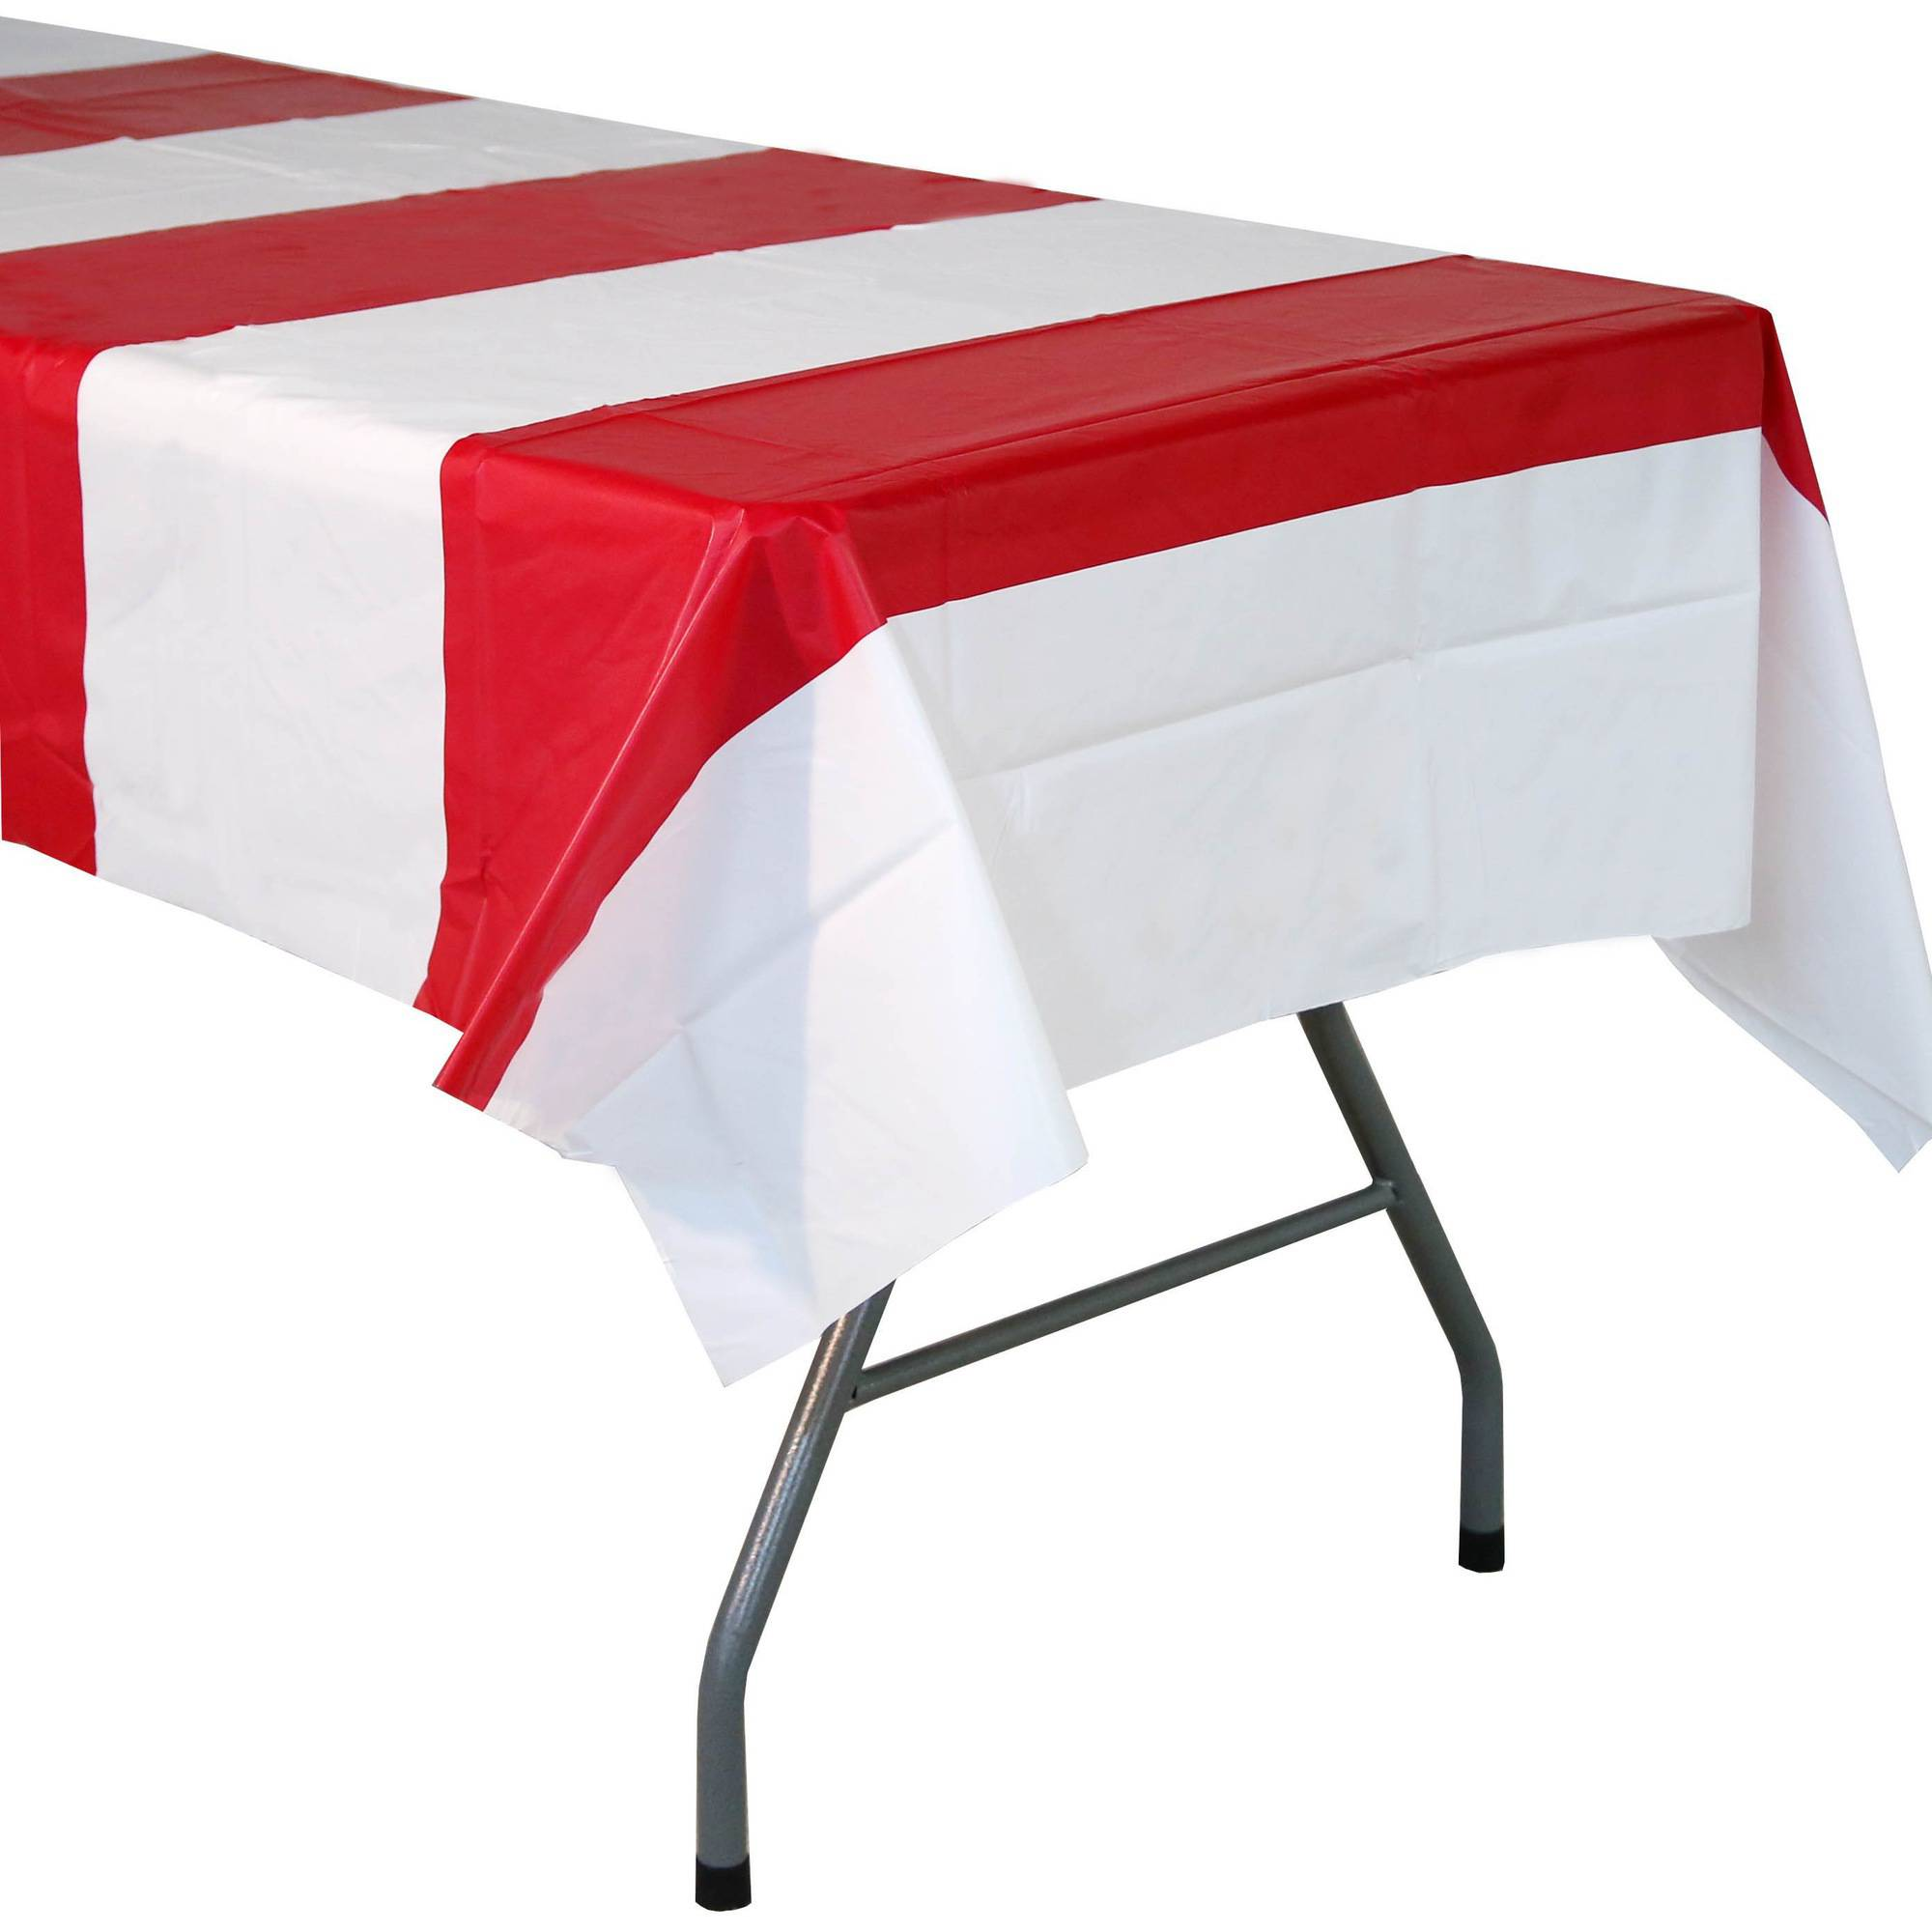 Red and White Striped Tablecover Walmart